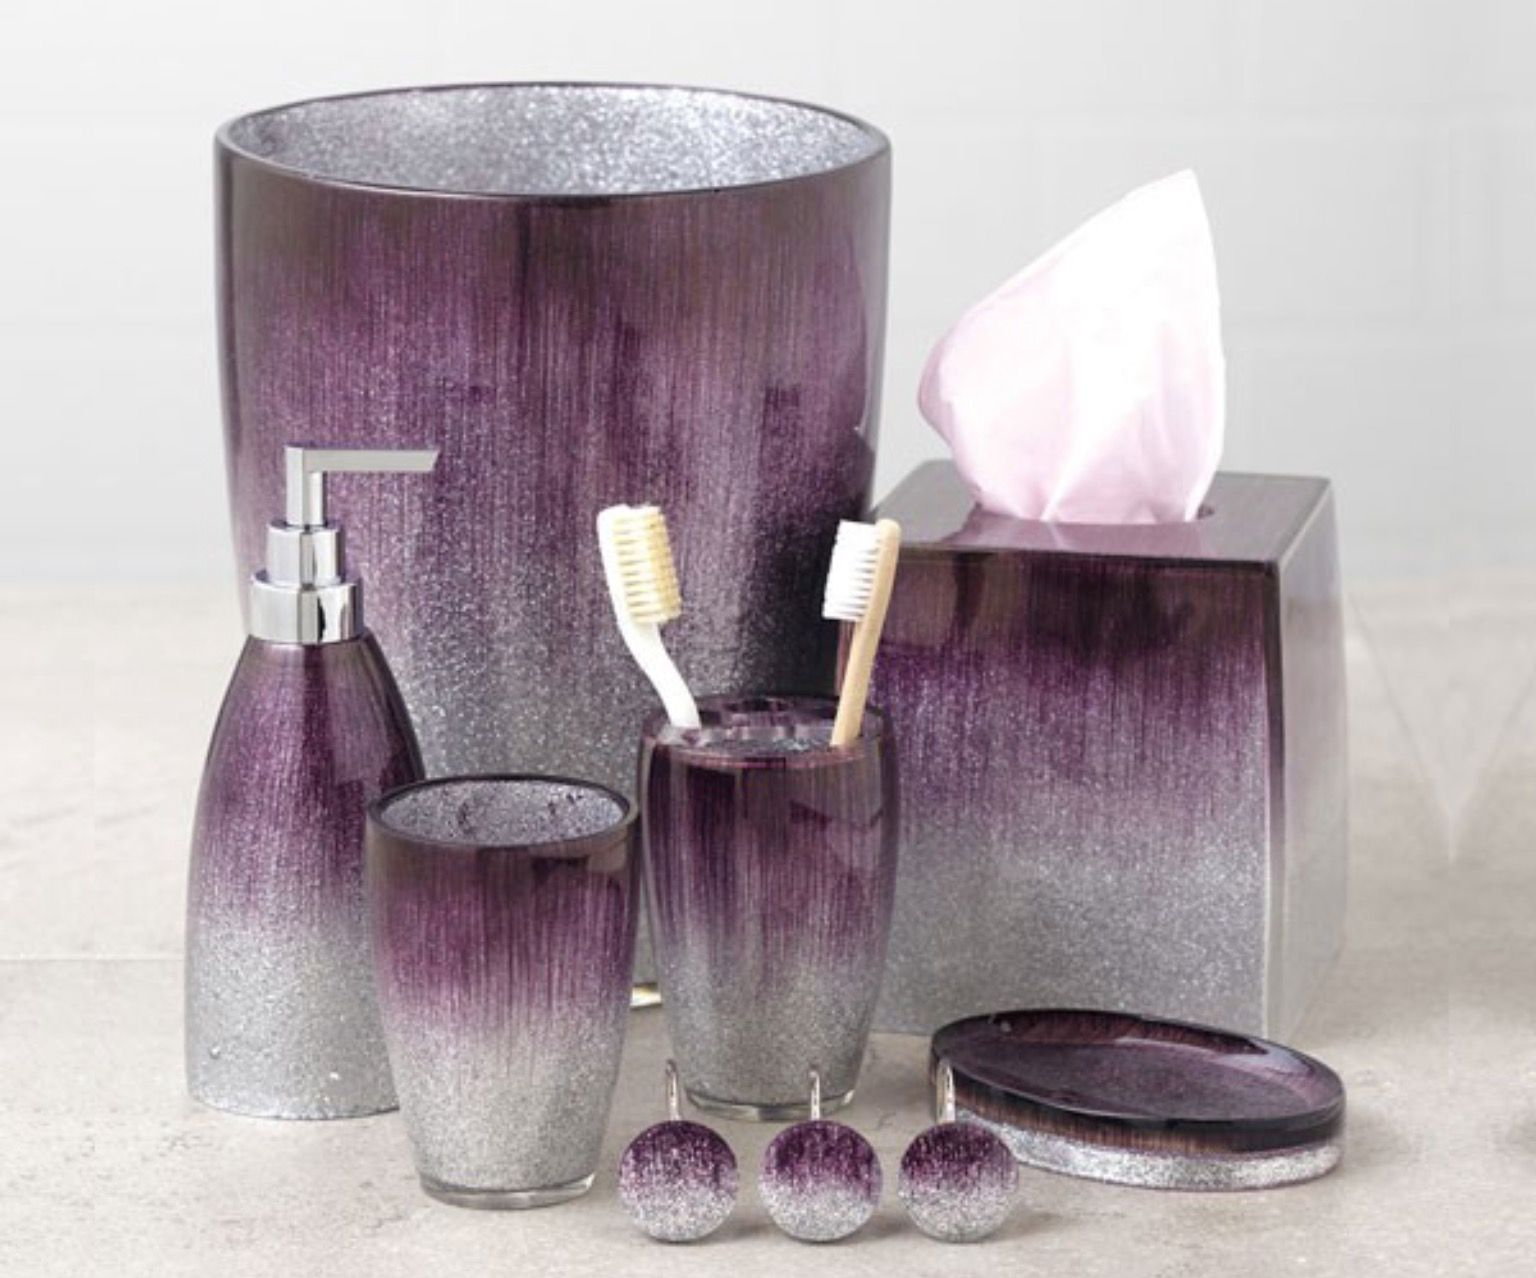 Pin By Monica Pistone On Things I Love For Home Purple Bathroom